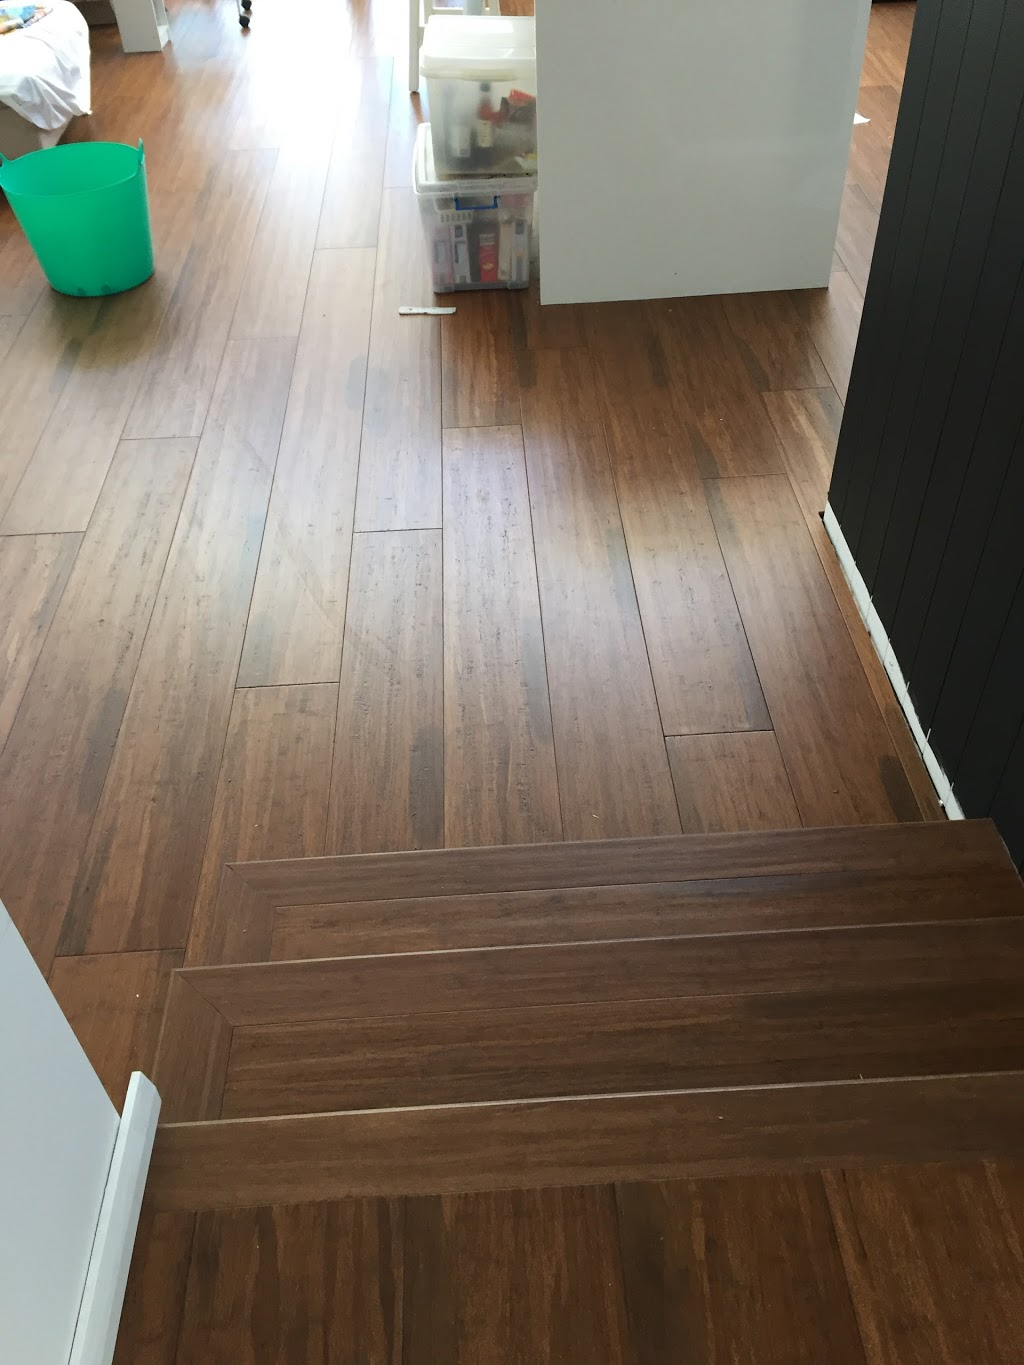 Fantastic Timber Floors Pty Ltd. | home goods store | 87 Princes Hwy, Fairy Meadow NSW 2519, Australia | 0404317563 OR +61 404 317 563